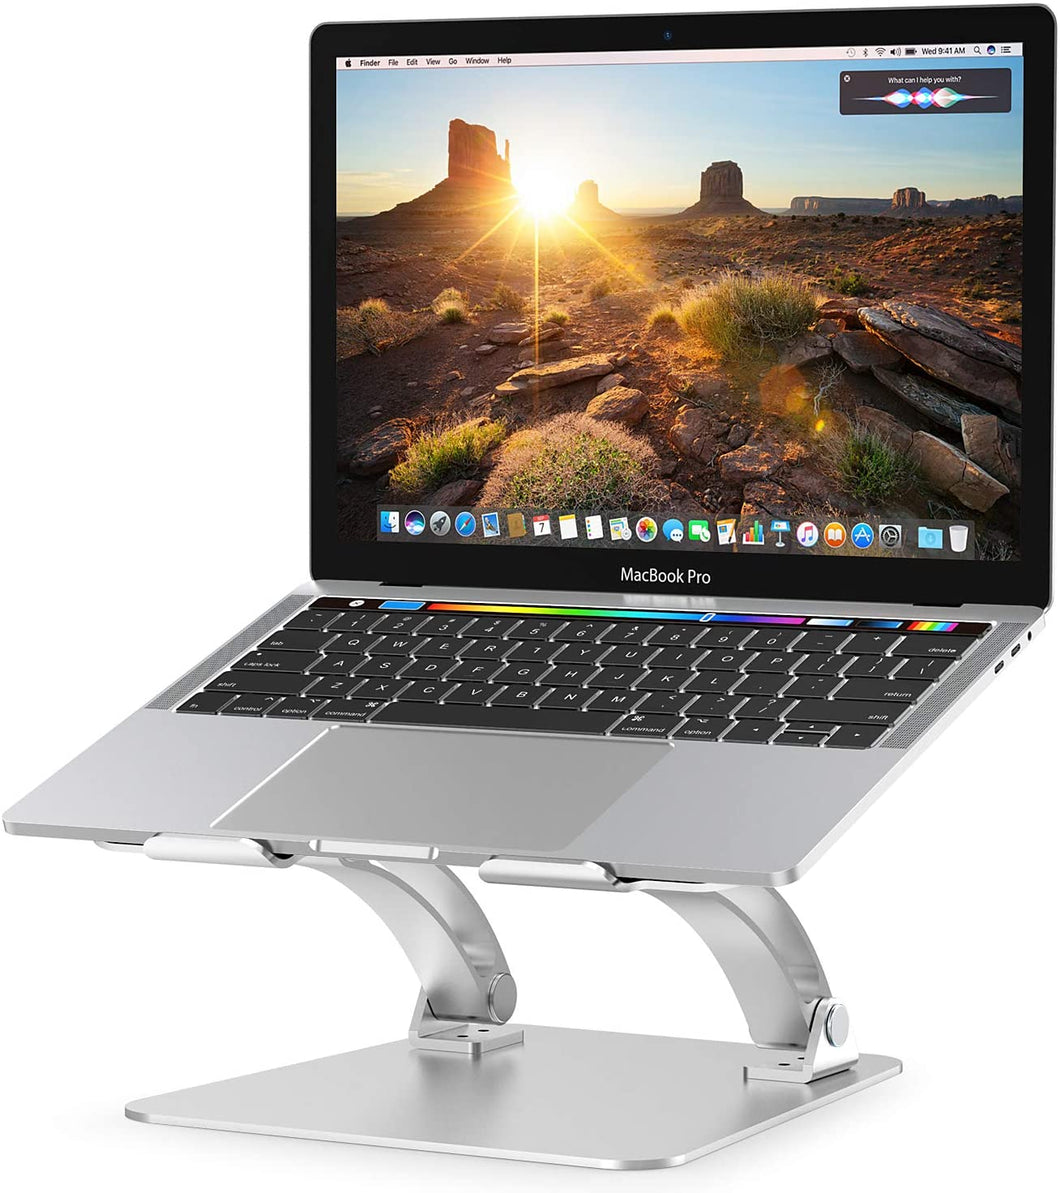 Nulaxy Laptop Stand, Ergonomic Adjustable Laptop Stand Compatible with All Laptops 10-17.3